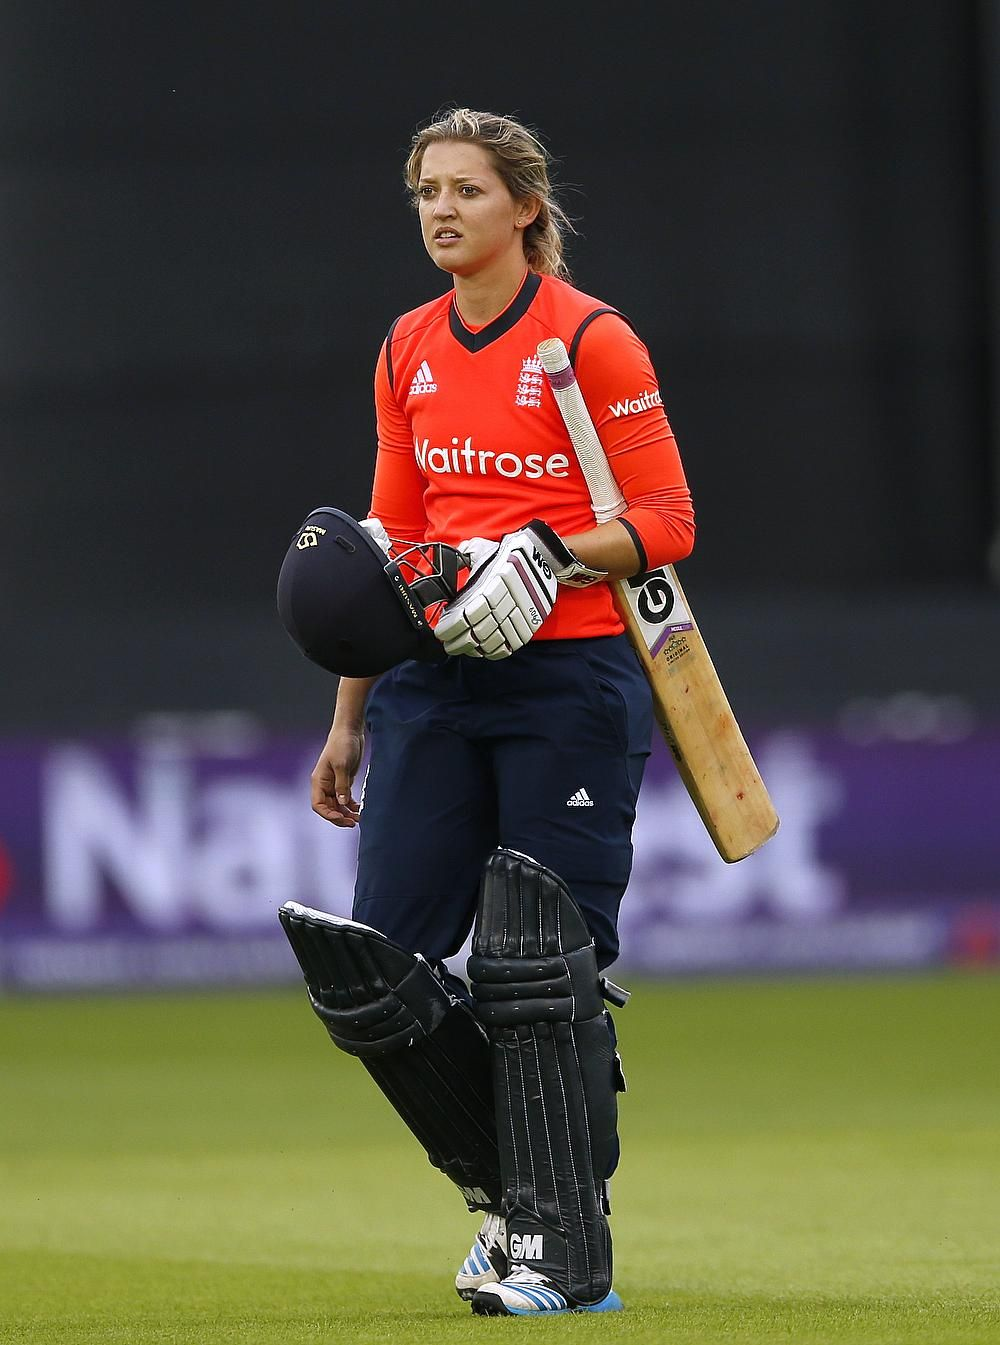 England Cricketer Sarah Taylor With Images Cricket Sport